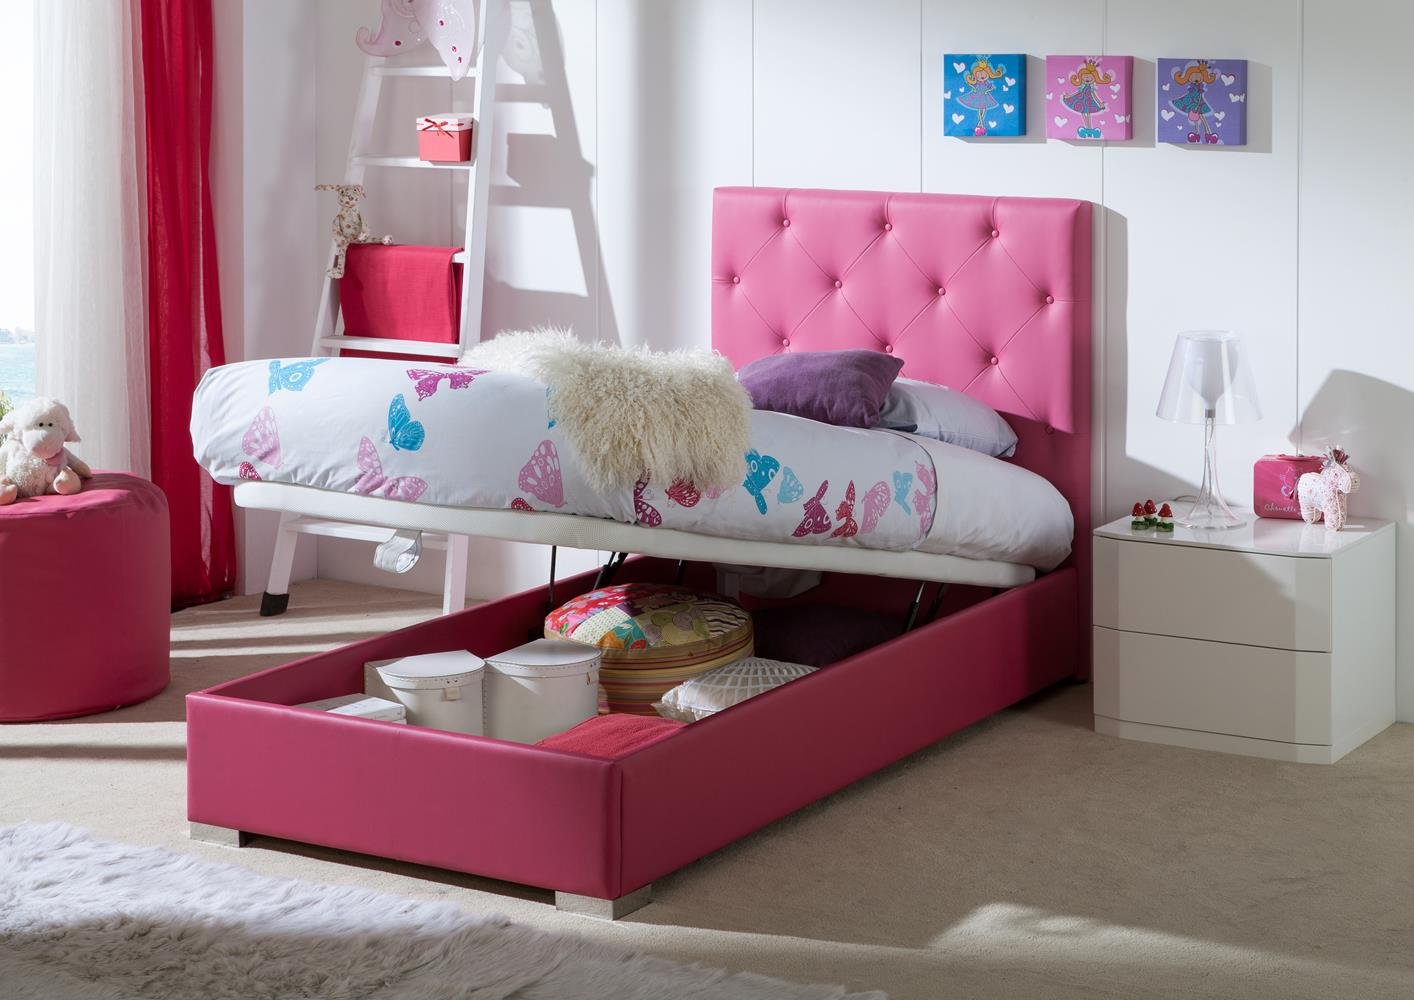 acheter votre t te de lit fuscia capitonn e chez simeuble. Black Bedroom Furniture Sets. Home Design Ideas